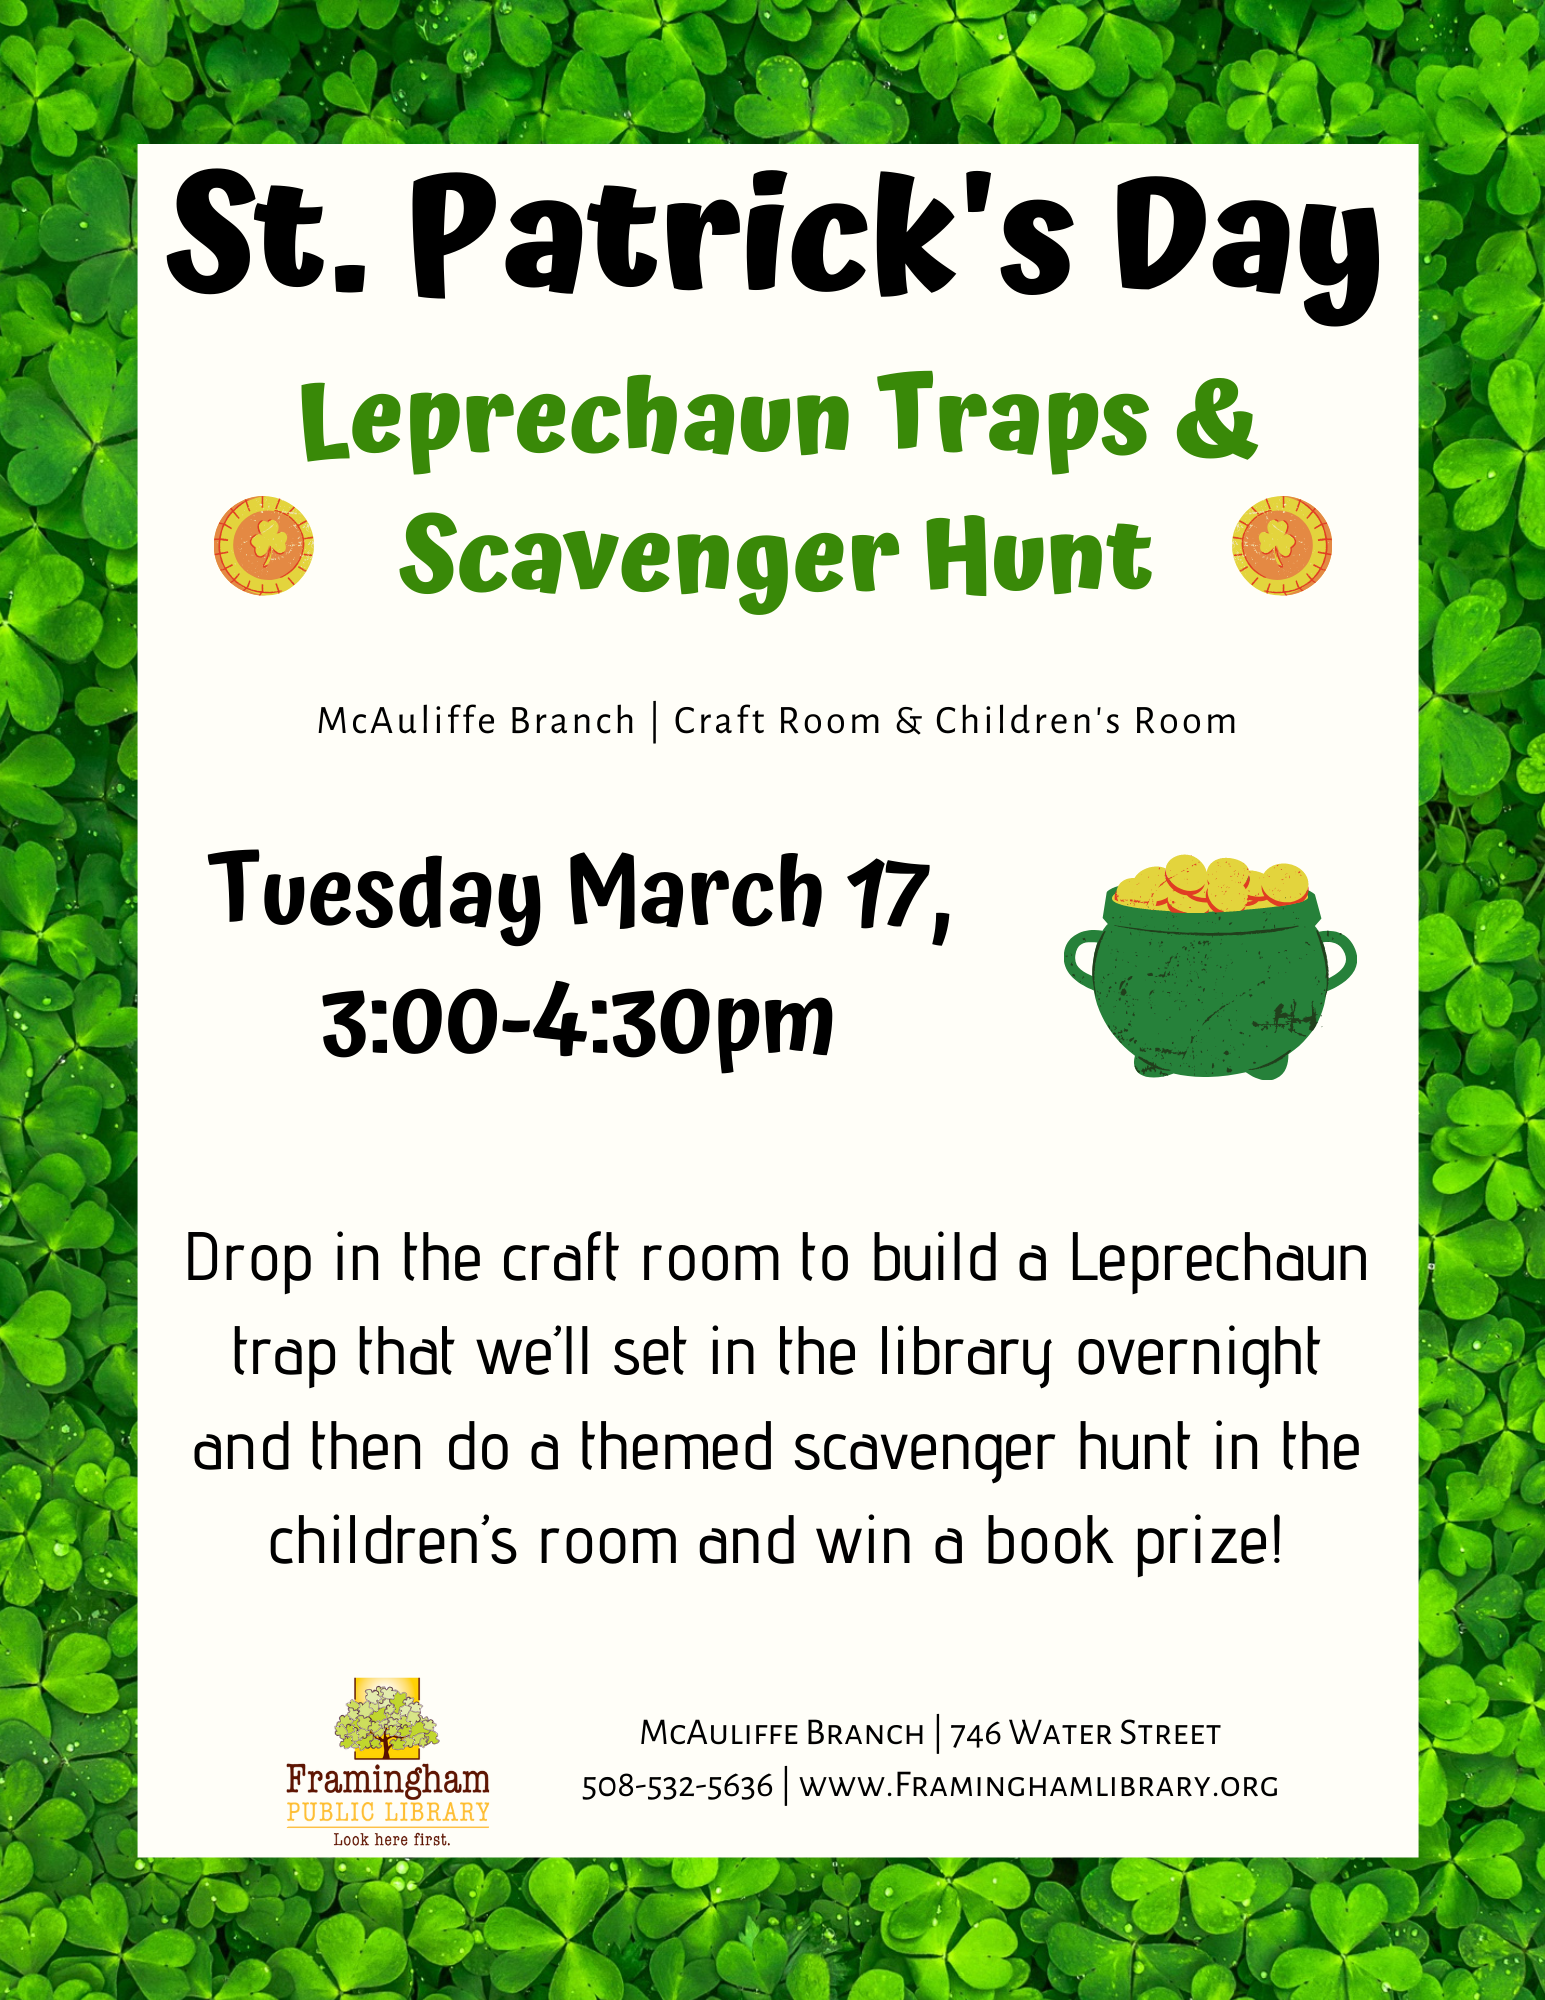 St. Patrick's Day Leprechaun Traps and Crafts thumbnail Photo